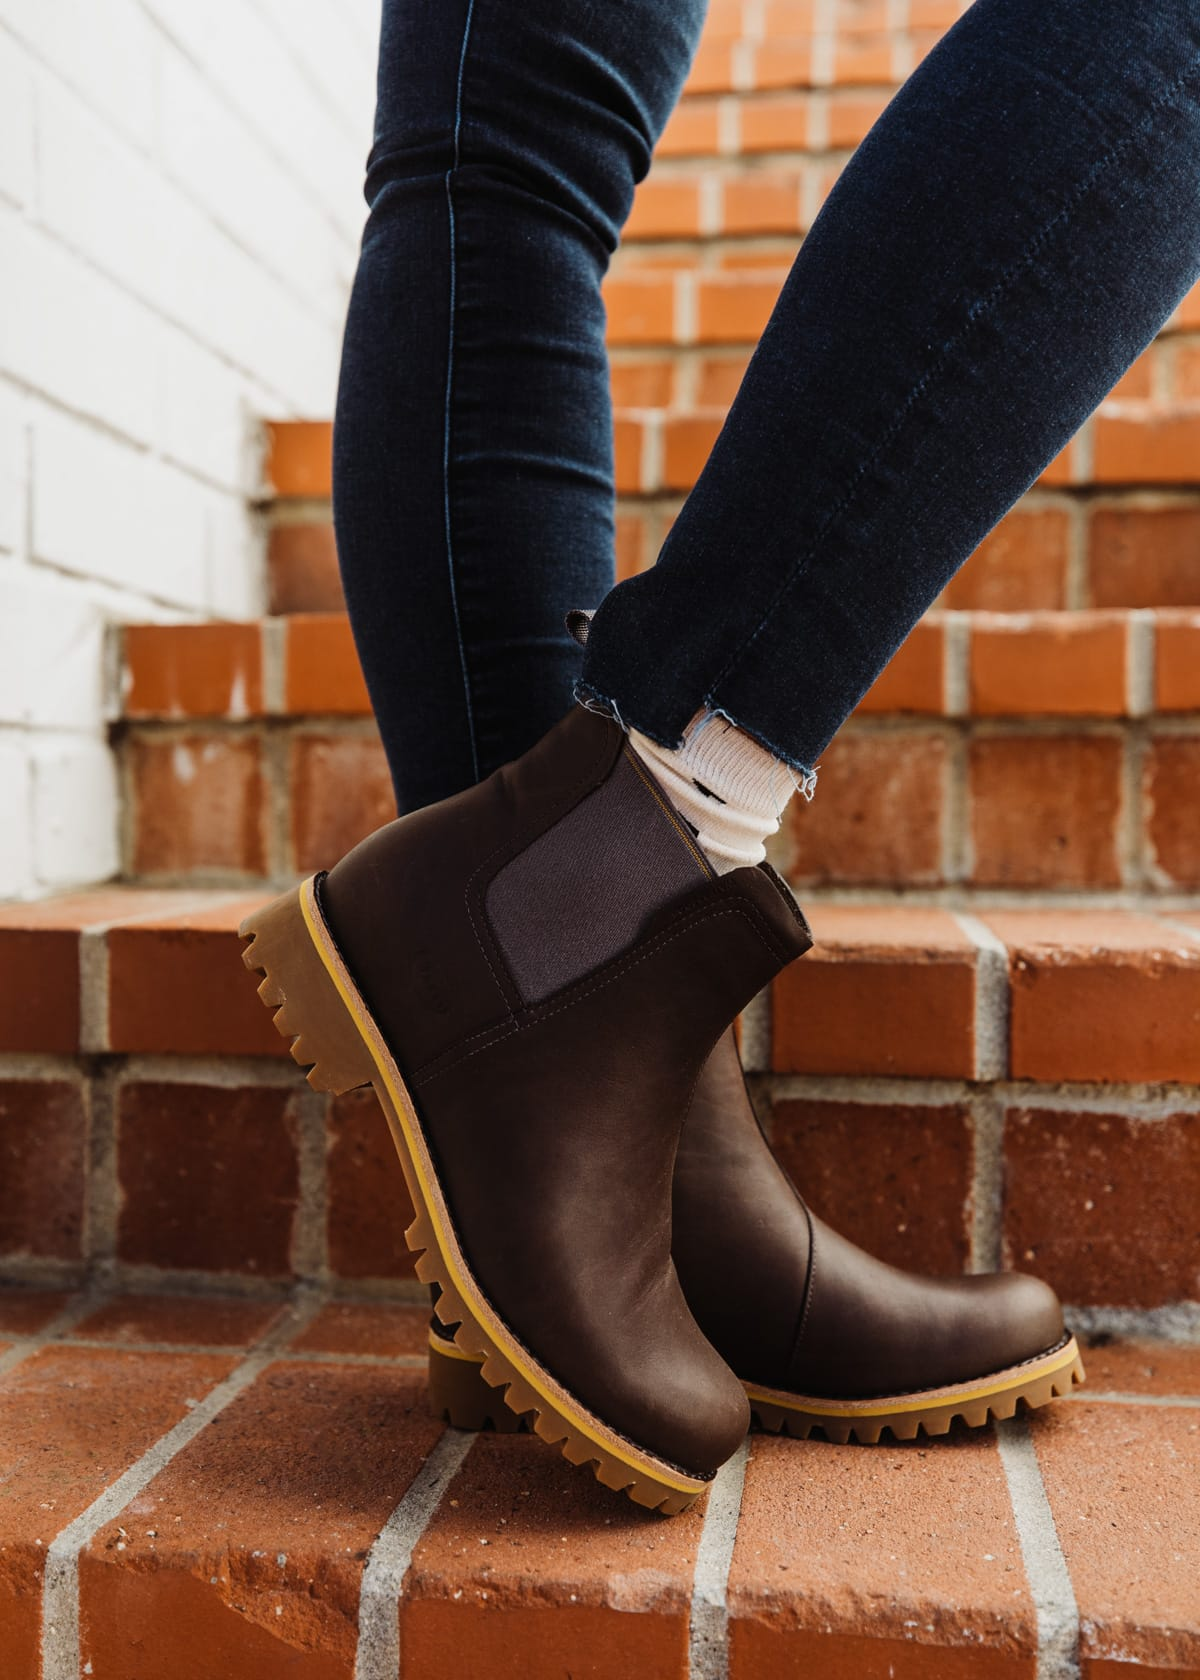 womens chelsea boots from Chaco Footwear